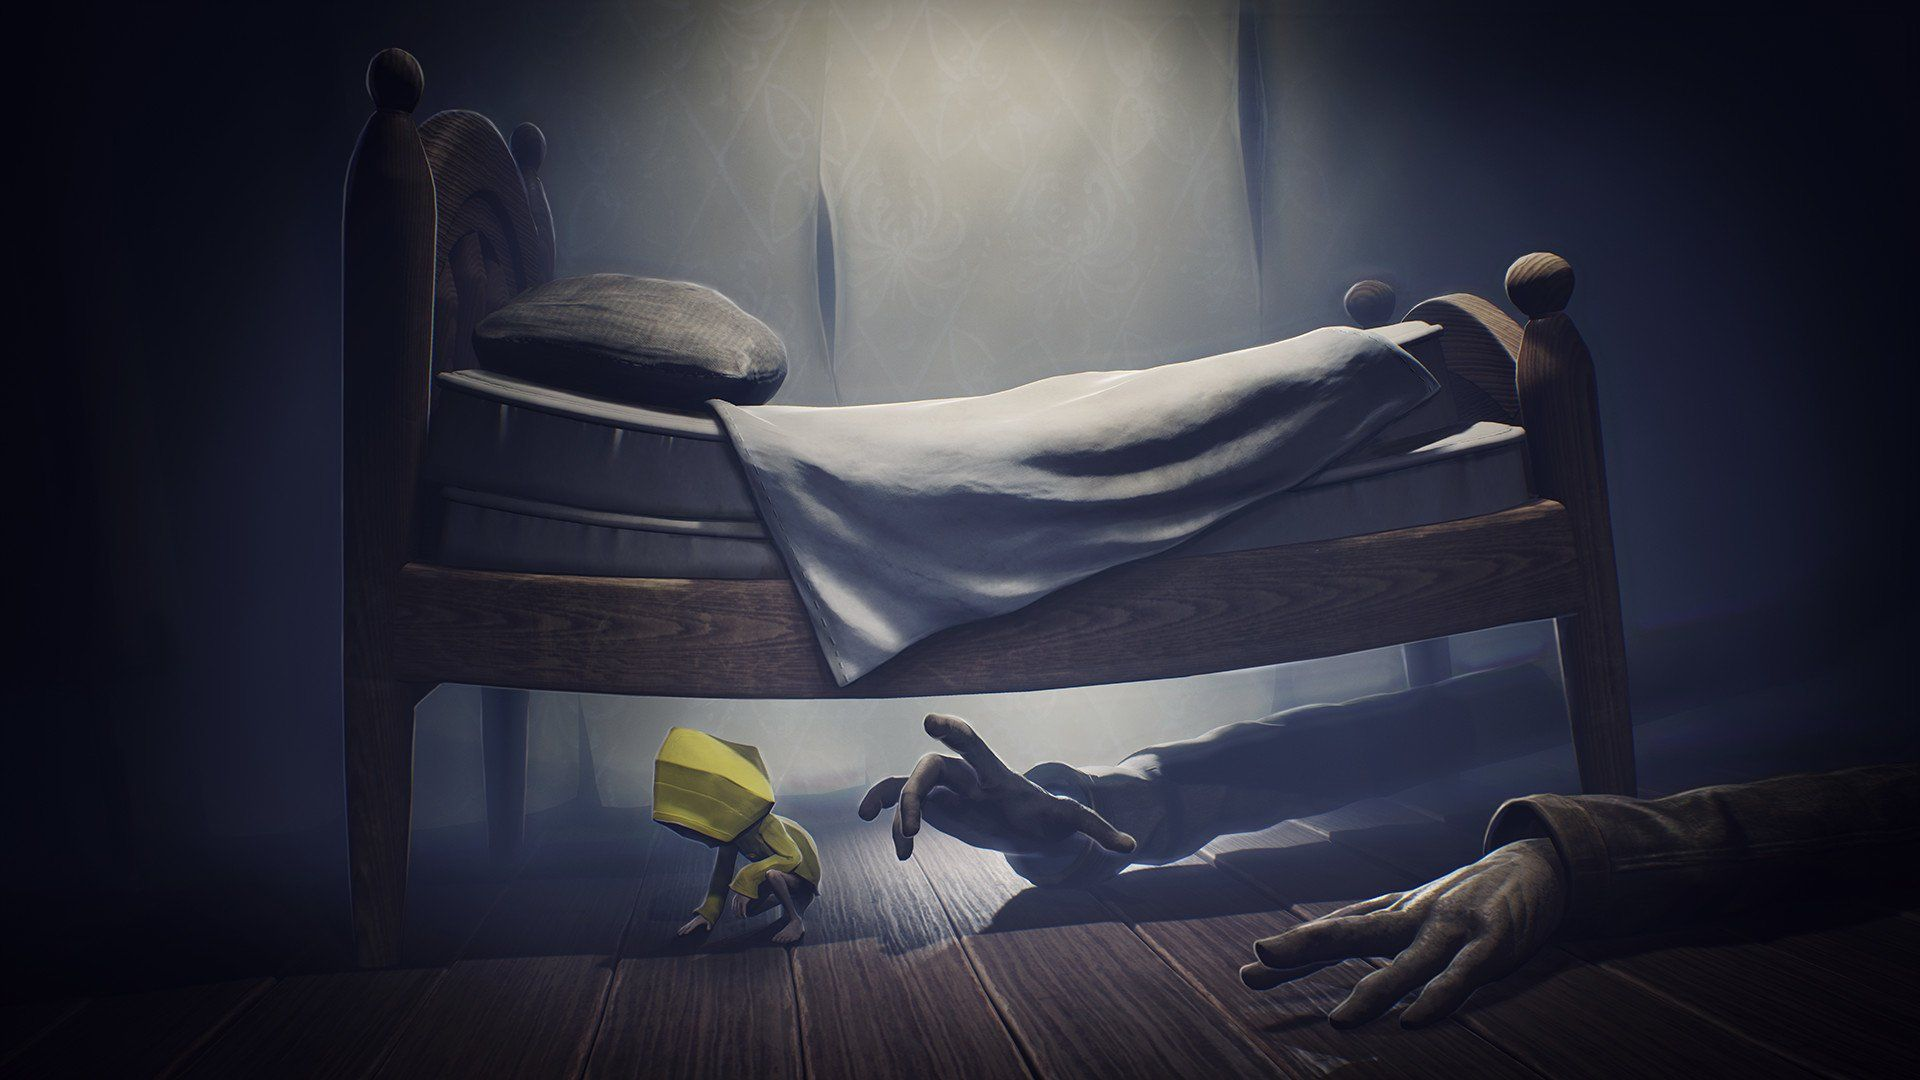 Little Nightmares gameplay